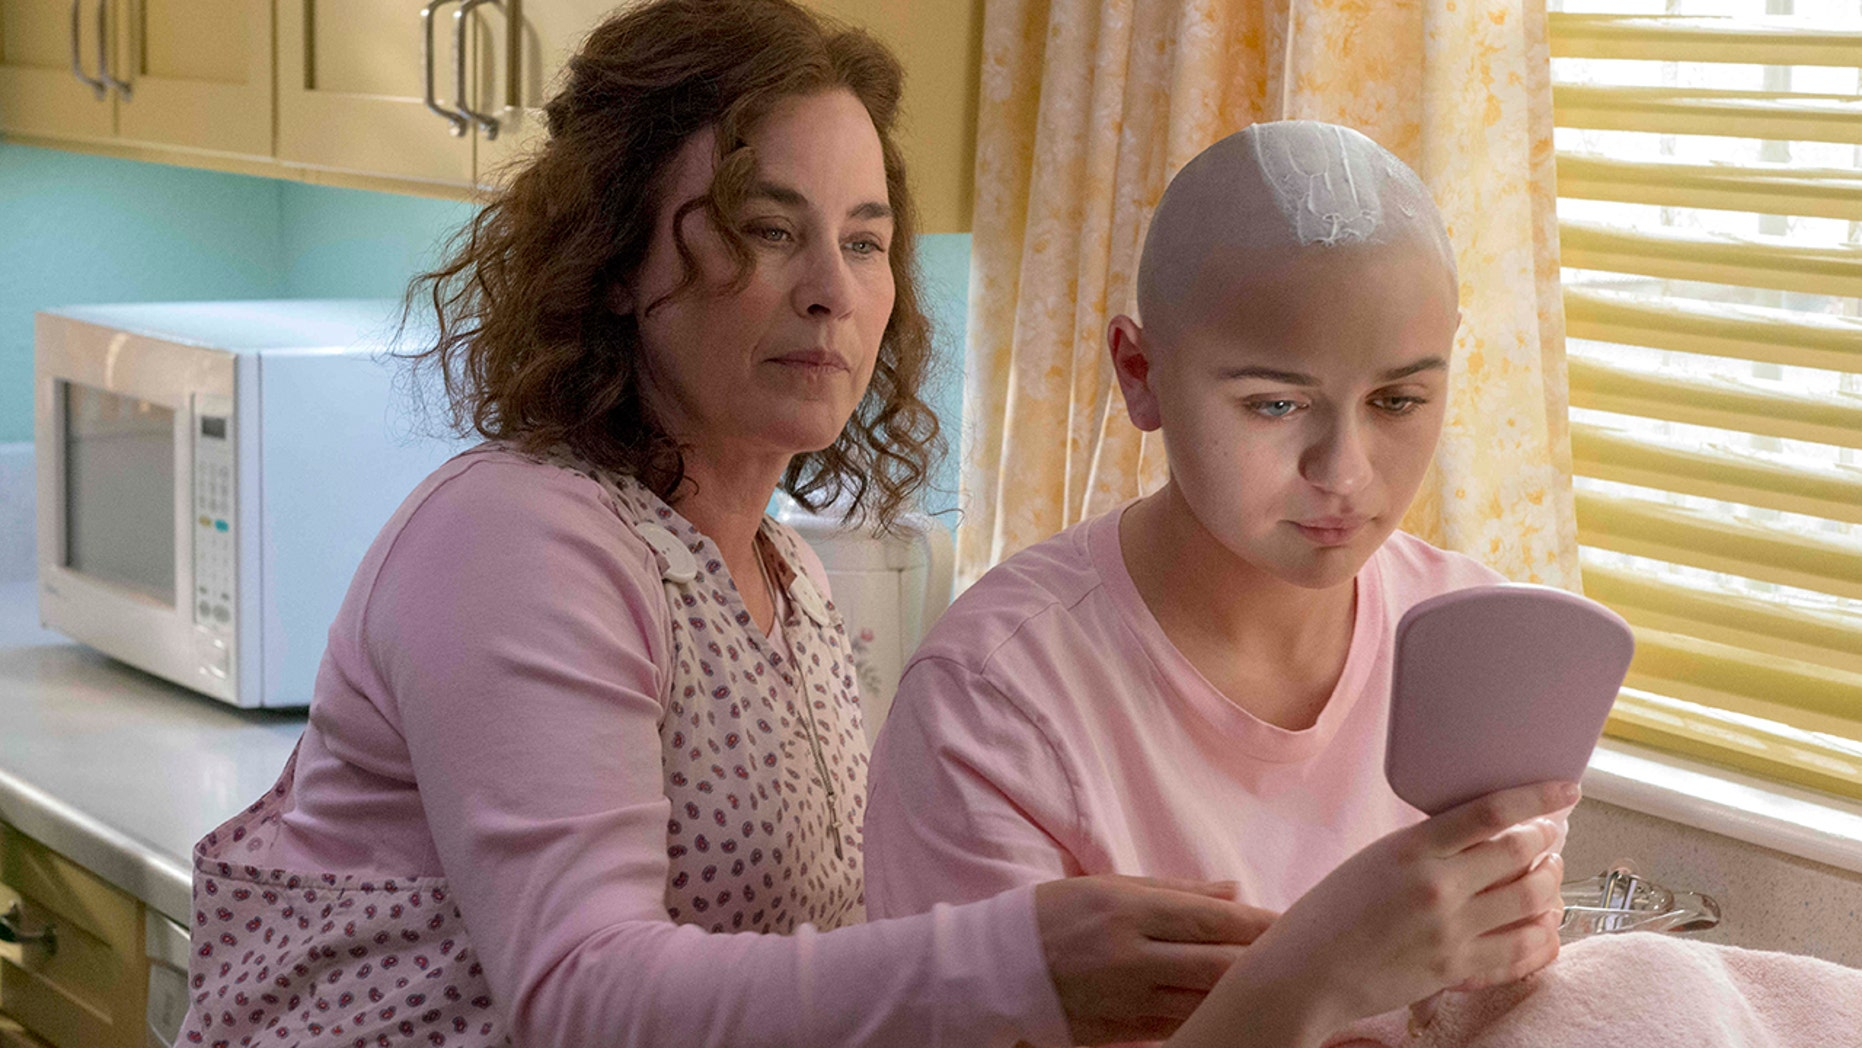 Patricia Arquette as Dee Dee Blanchard and Joey King as Gypsy Rose Blanchard. Their chemistry was immediate, Arquette told Fox News.